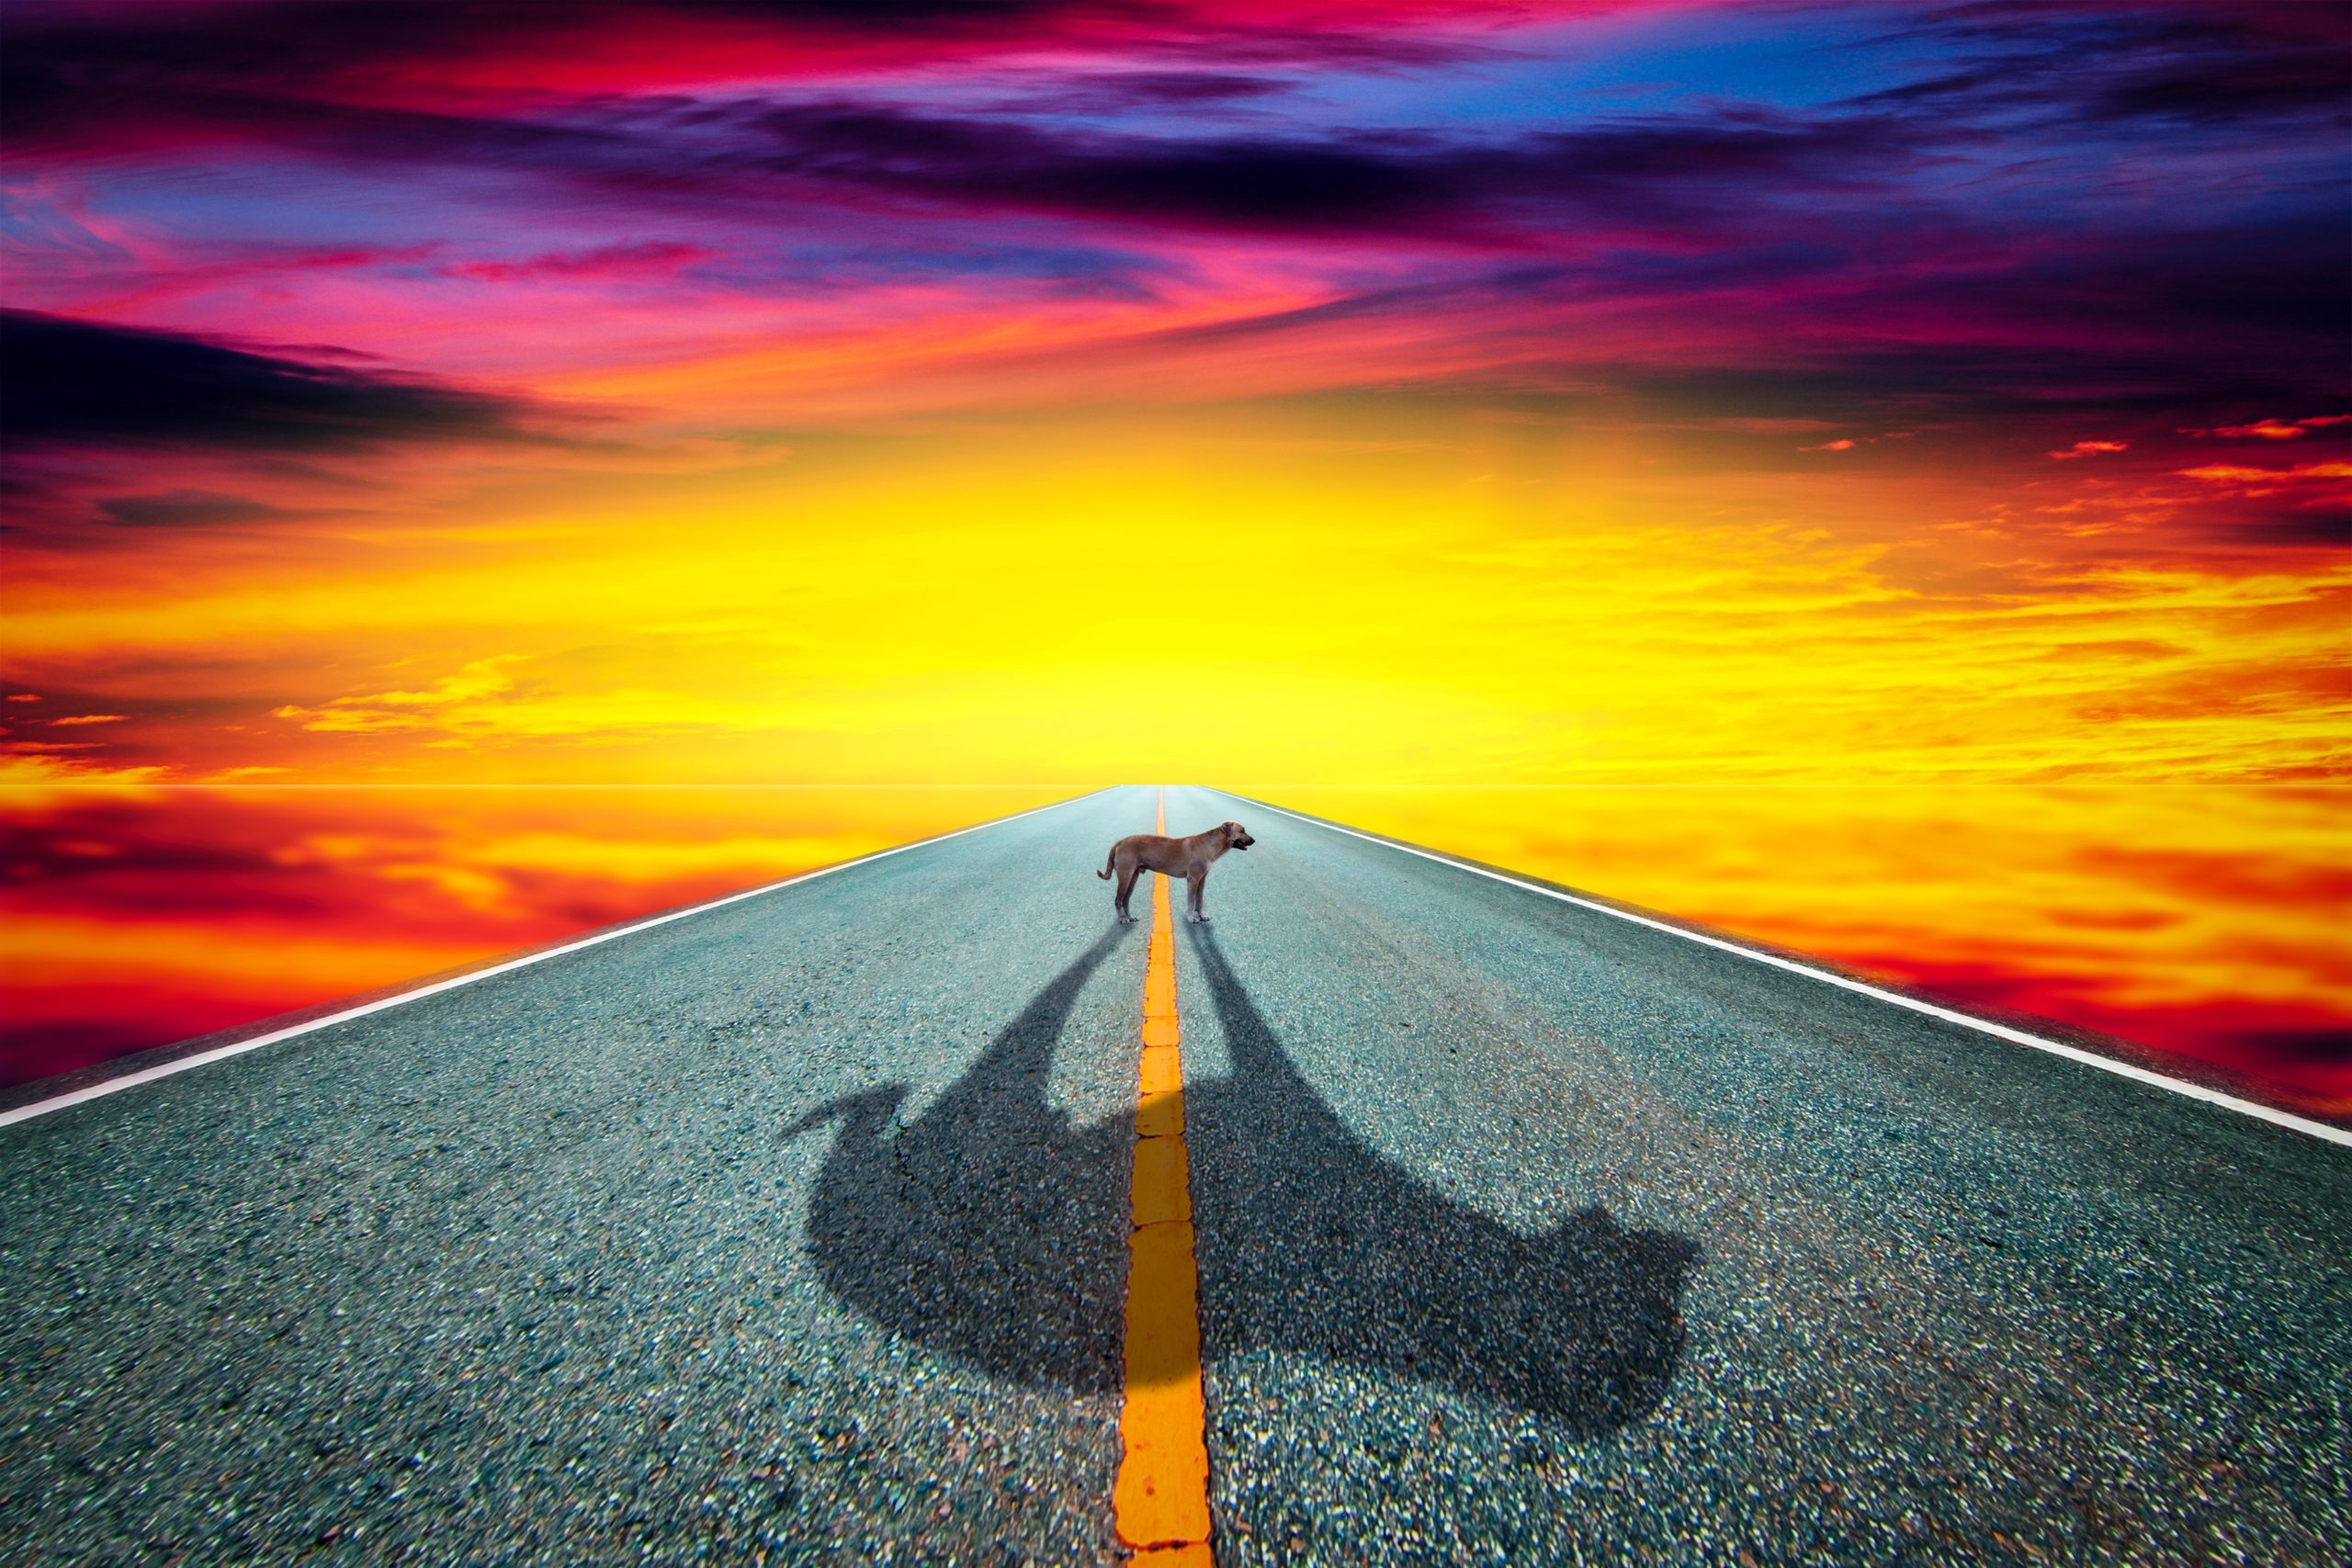 Dog and shadow on the road with dramatic sky background.Art tone